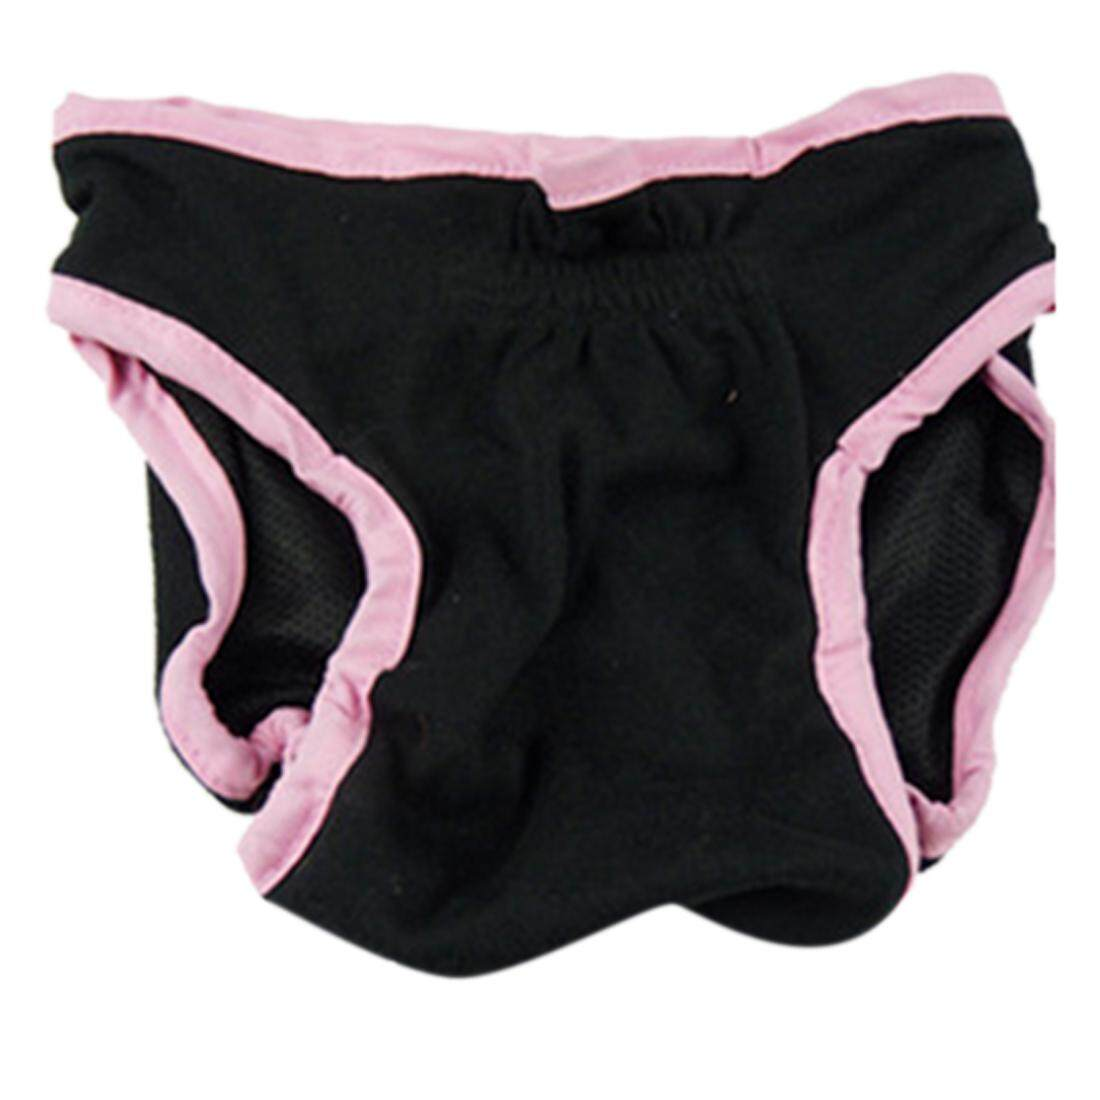 การส่งเสริม 360DSC Female Pet Dog Velcro Fixed Underwear Puppy Cat Diaper Sanitary Pants - Black L - intl hot deal - มีเพียง ฿144.00